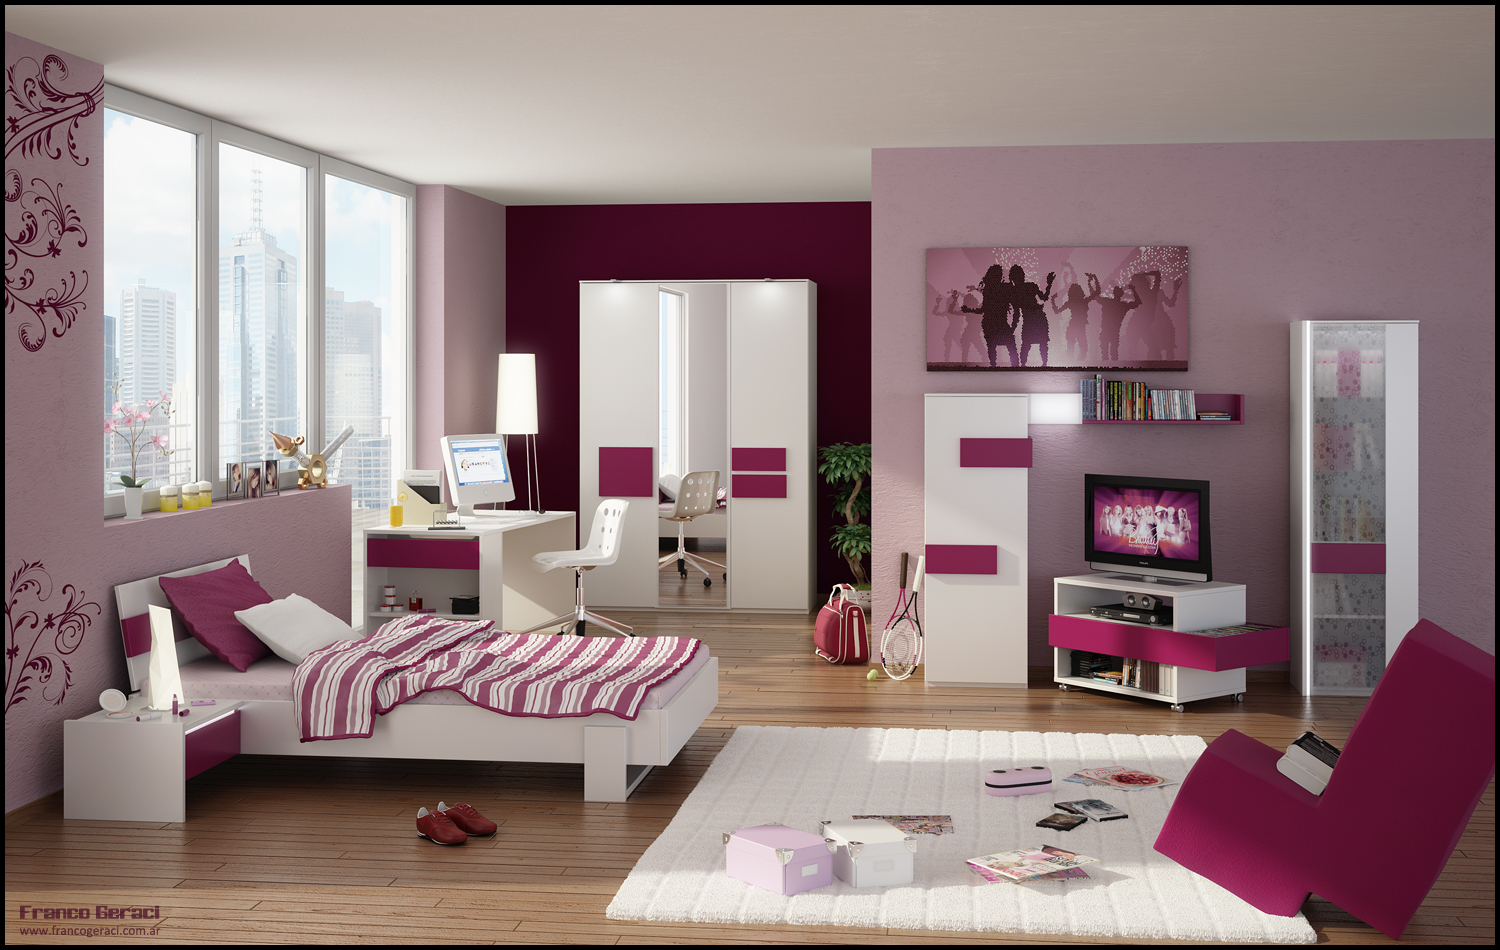 Room Interior Design For Teenagers Of Best Interior Design Feminine Home Designer